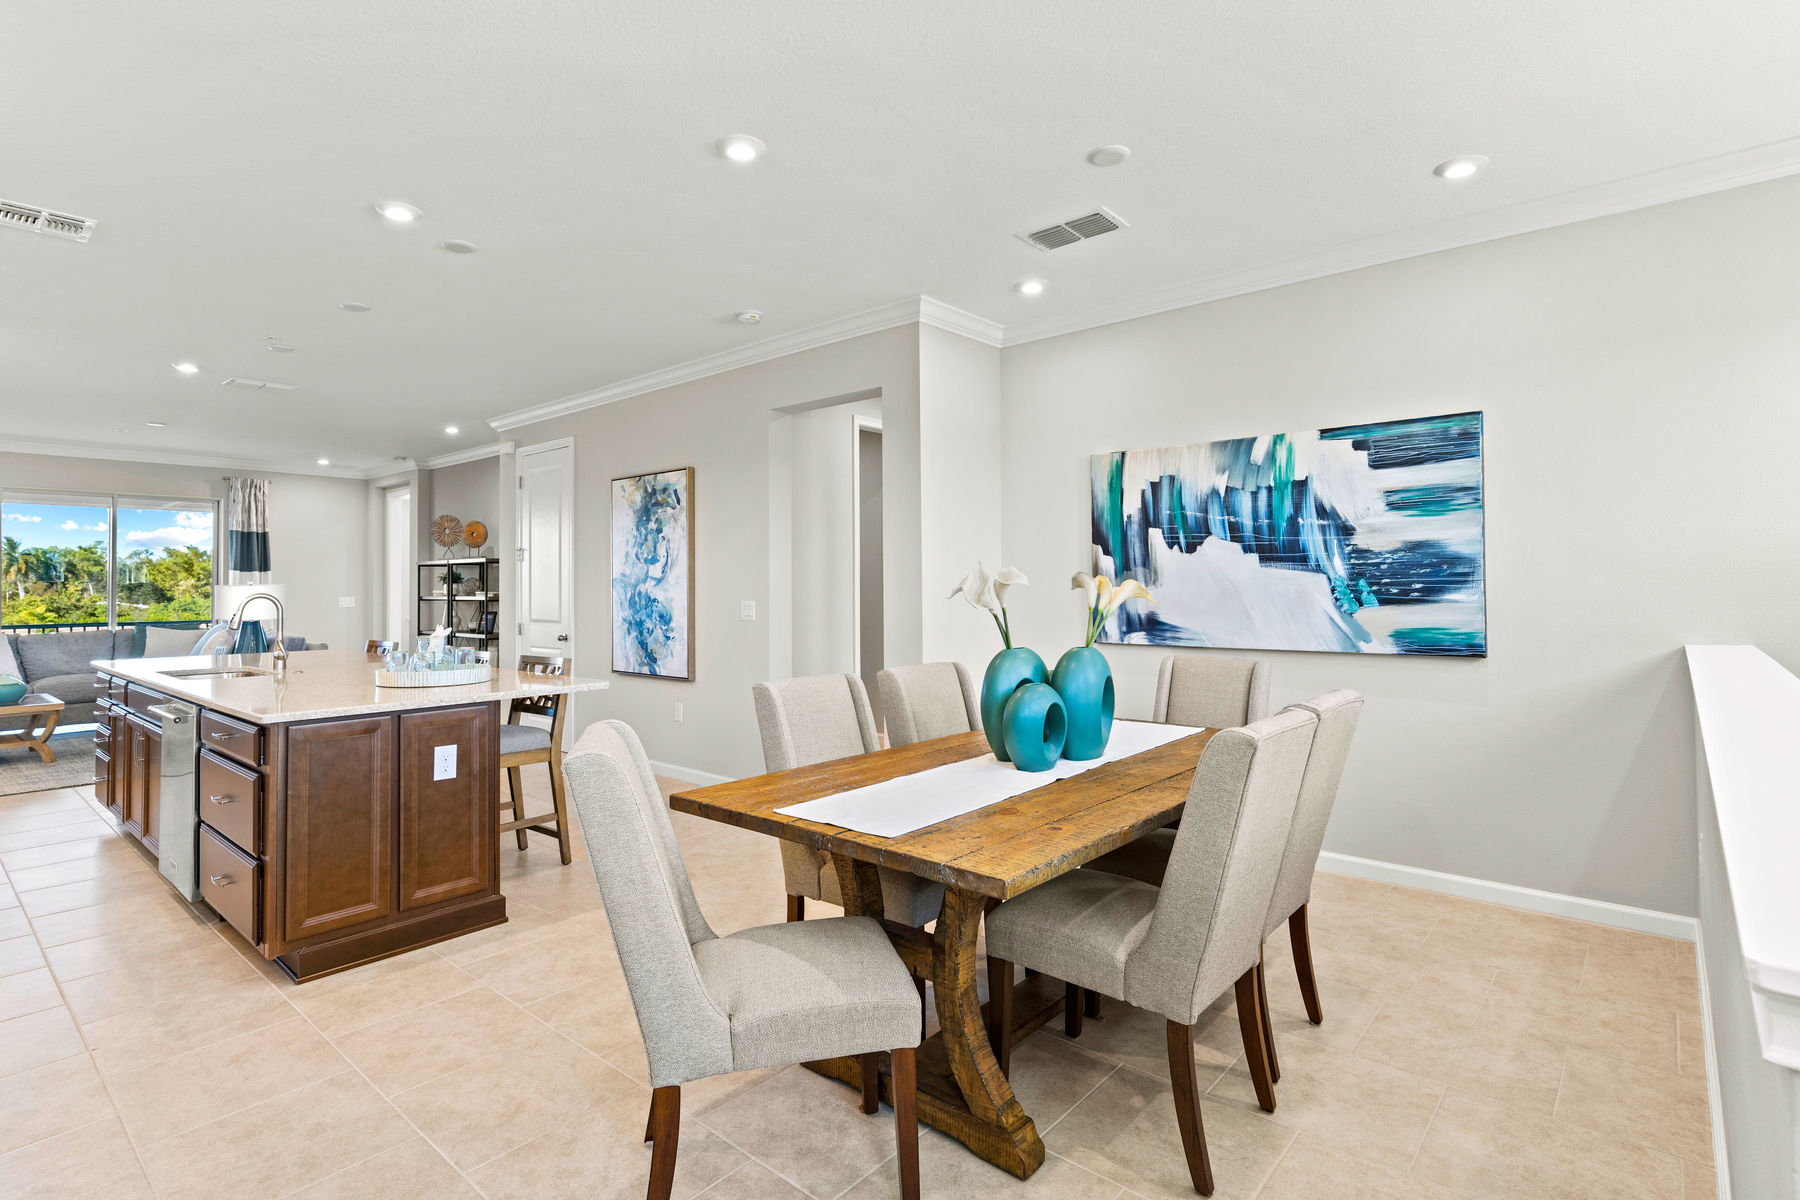 Seabright Plan Dining at Arboretum in Naples Florida by Mattamy Homes